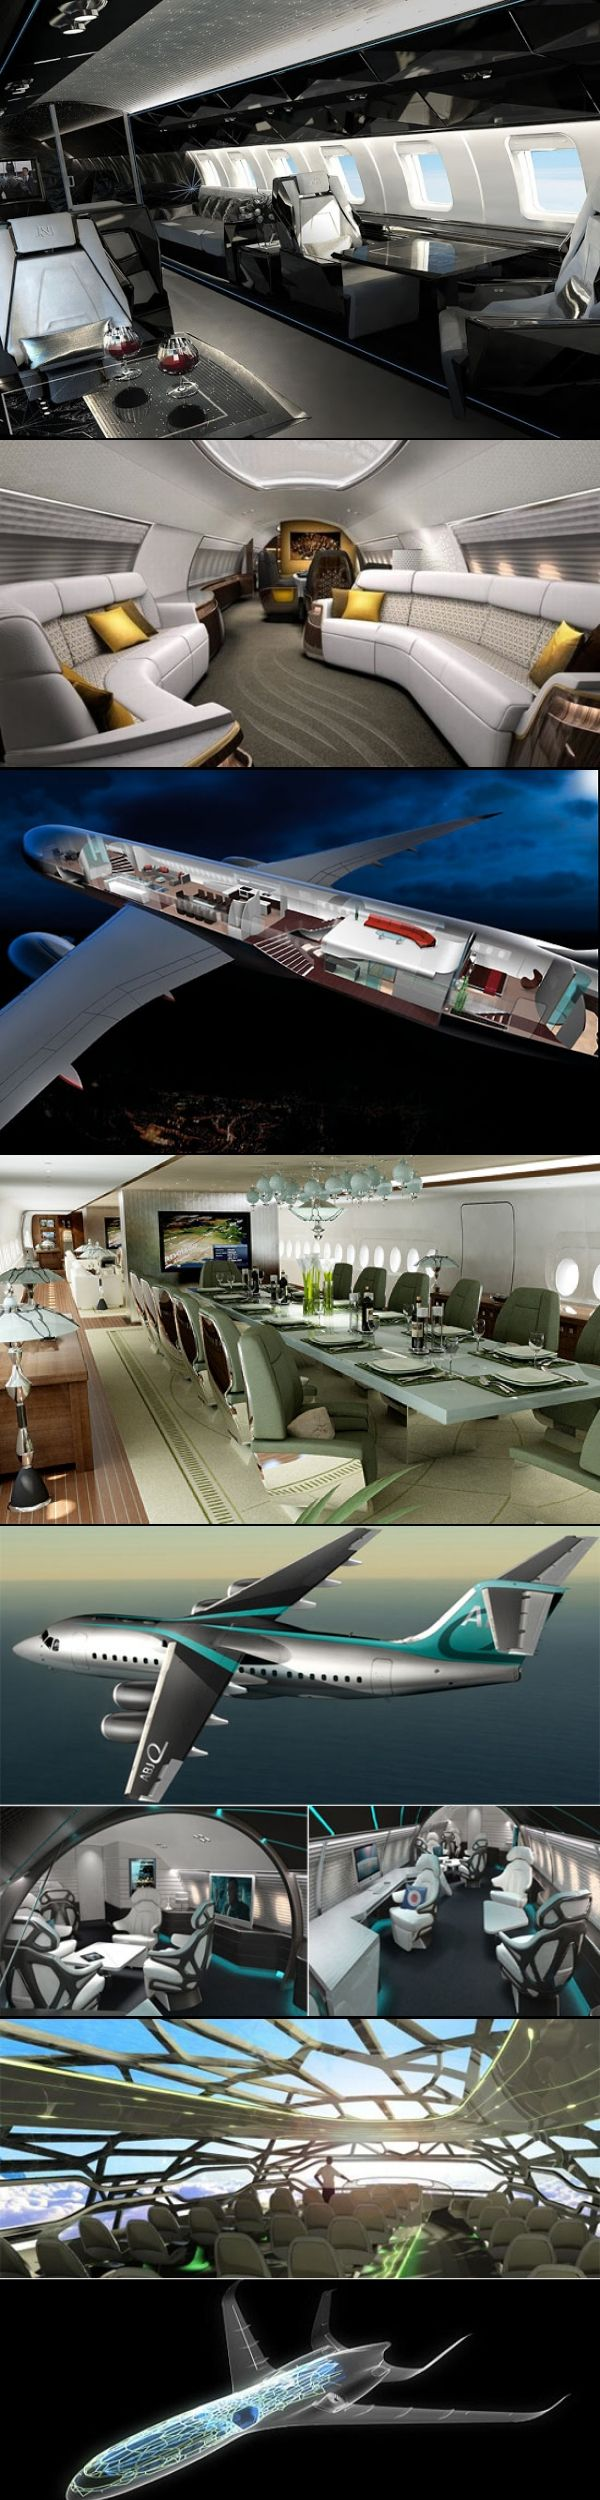 Luxury jet interior pictures book your private jet at anytime luxury jet interior pictures book your private jet at anytime directly from your phone with your jetsmarter app jetsmarter more fandeluxe Image collections